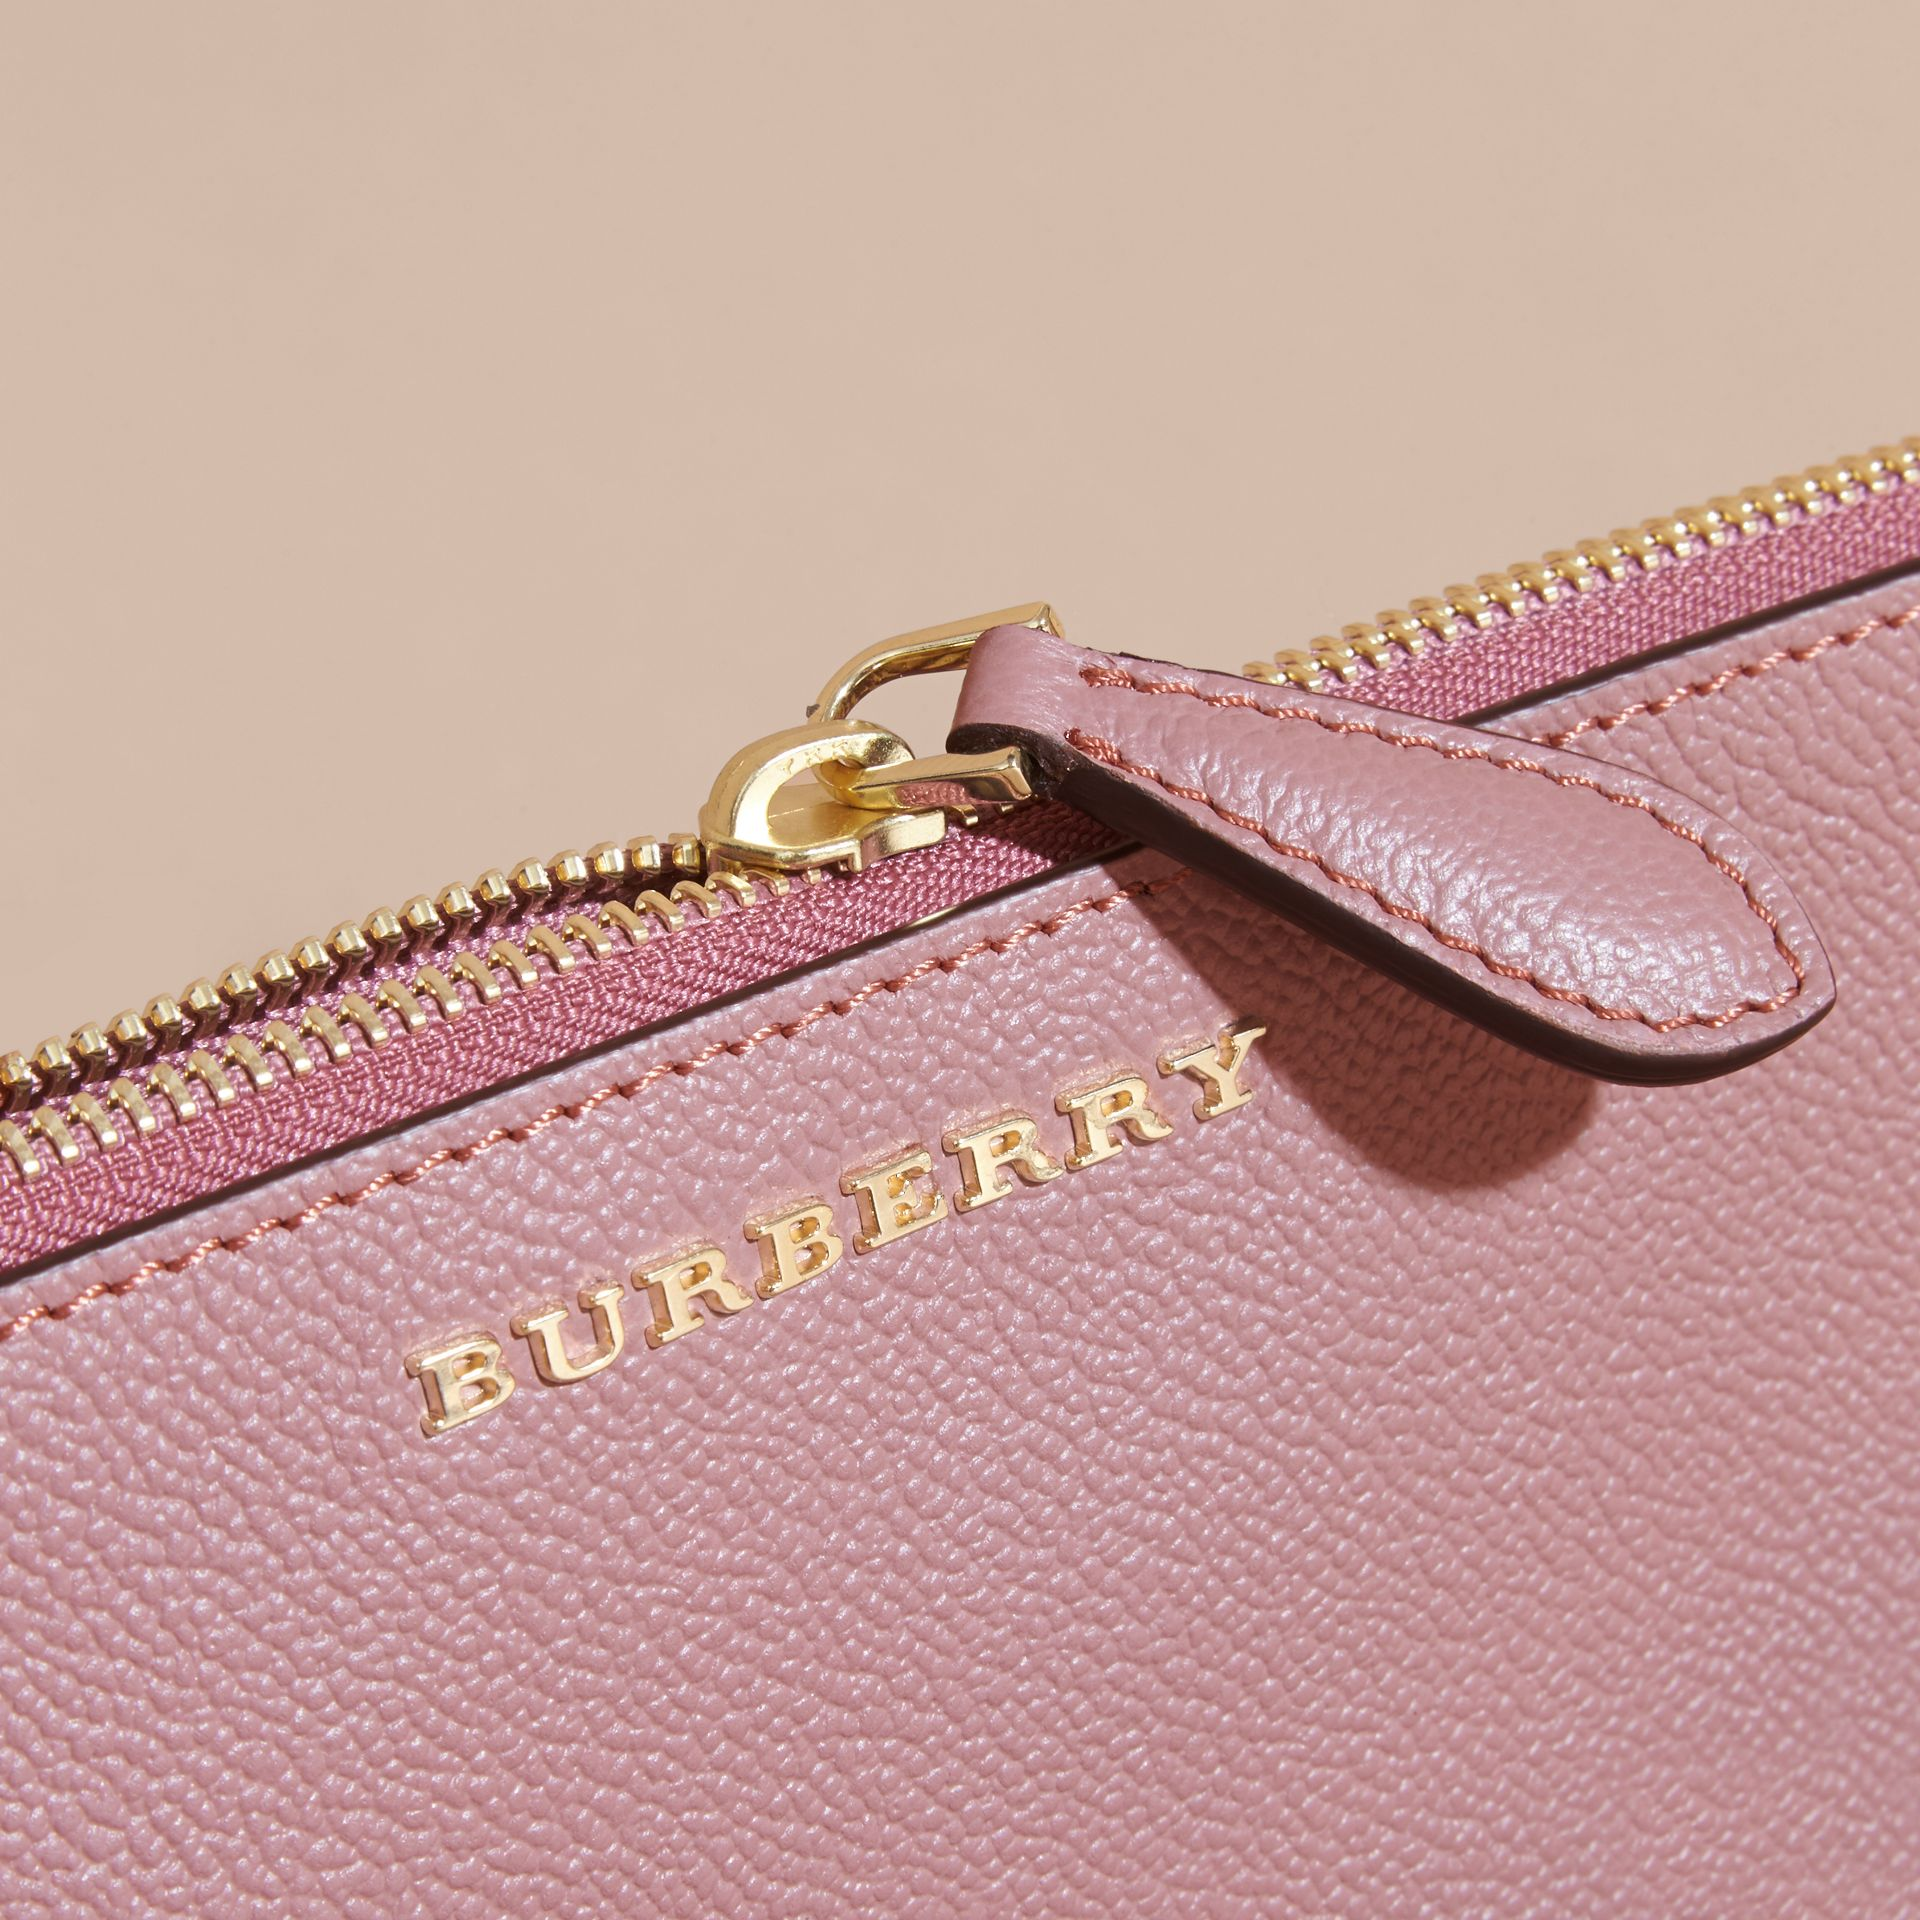 Leather Clutch Bag with Check Lining in Dusty Pink - Women | Burberry - gallery image 7